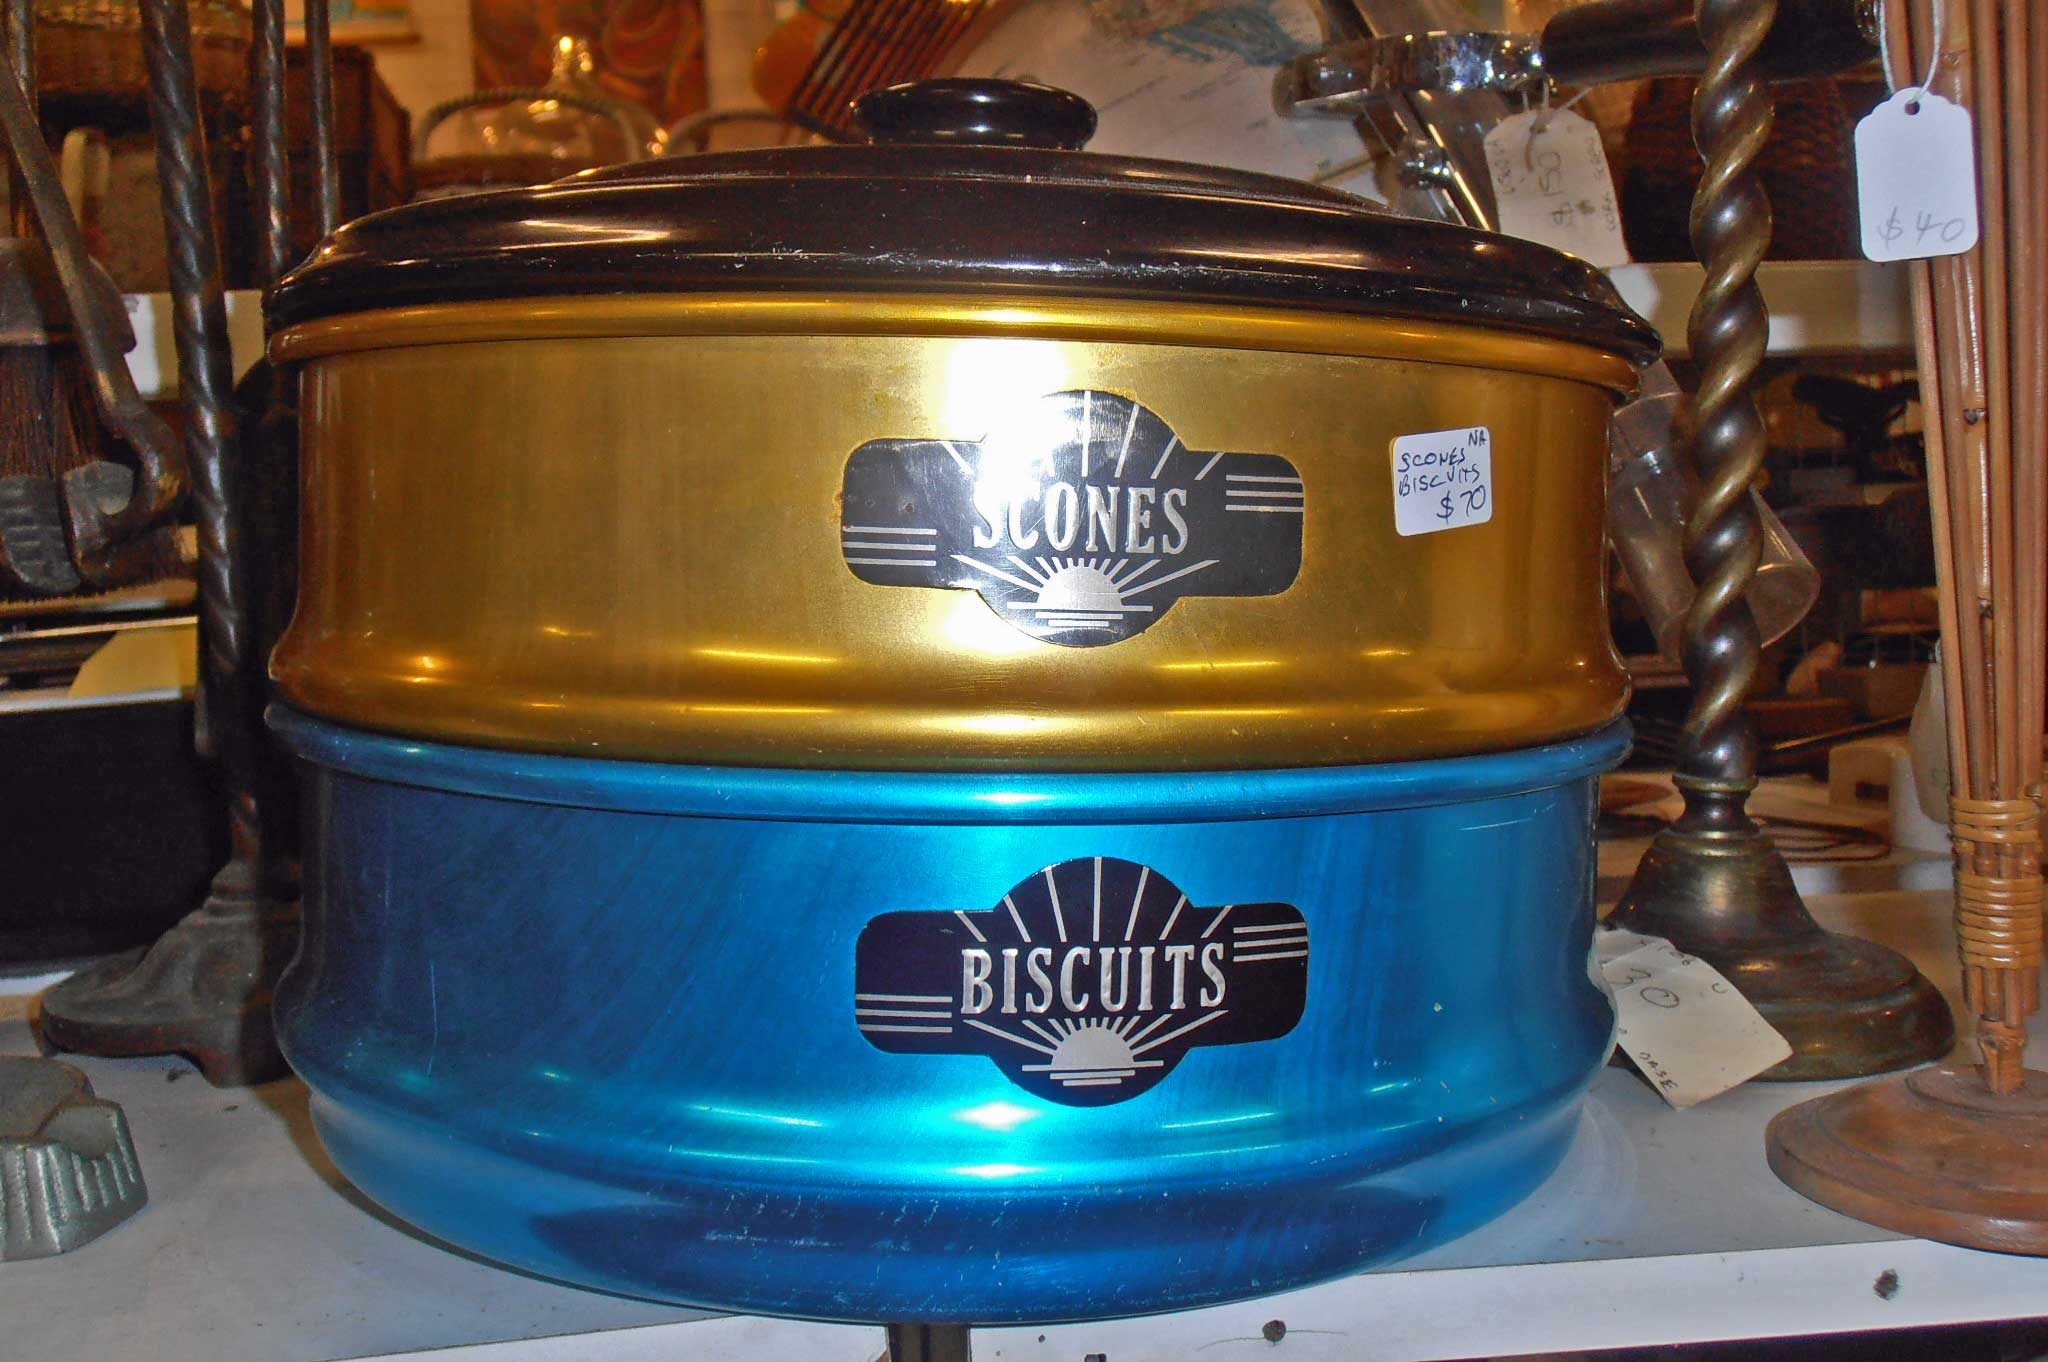 antique and vintage anodised cake and biscuit tin For sale at Heaths Old Wares, Antiques, Collectables and industrial antiques 12 station St bangalow NSW phone 0266872222 open 7 days